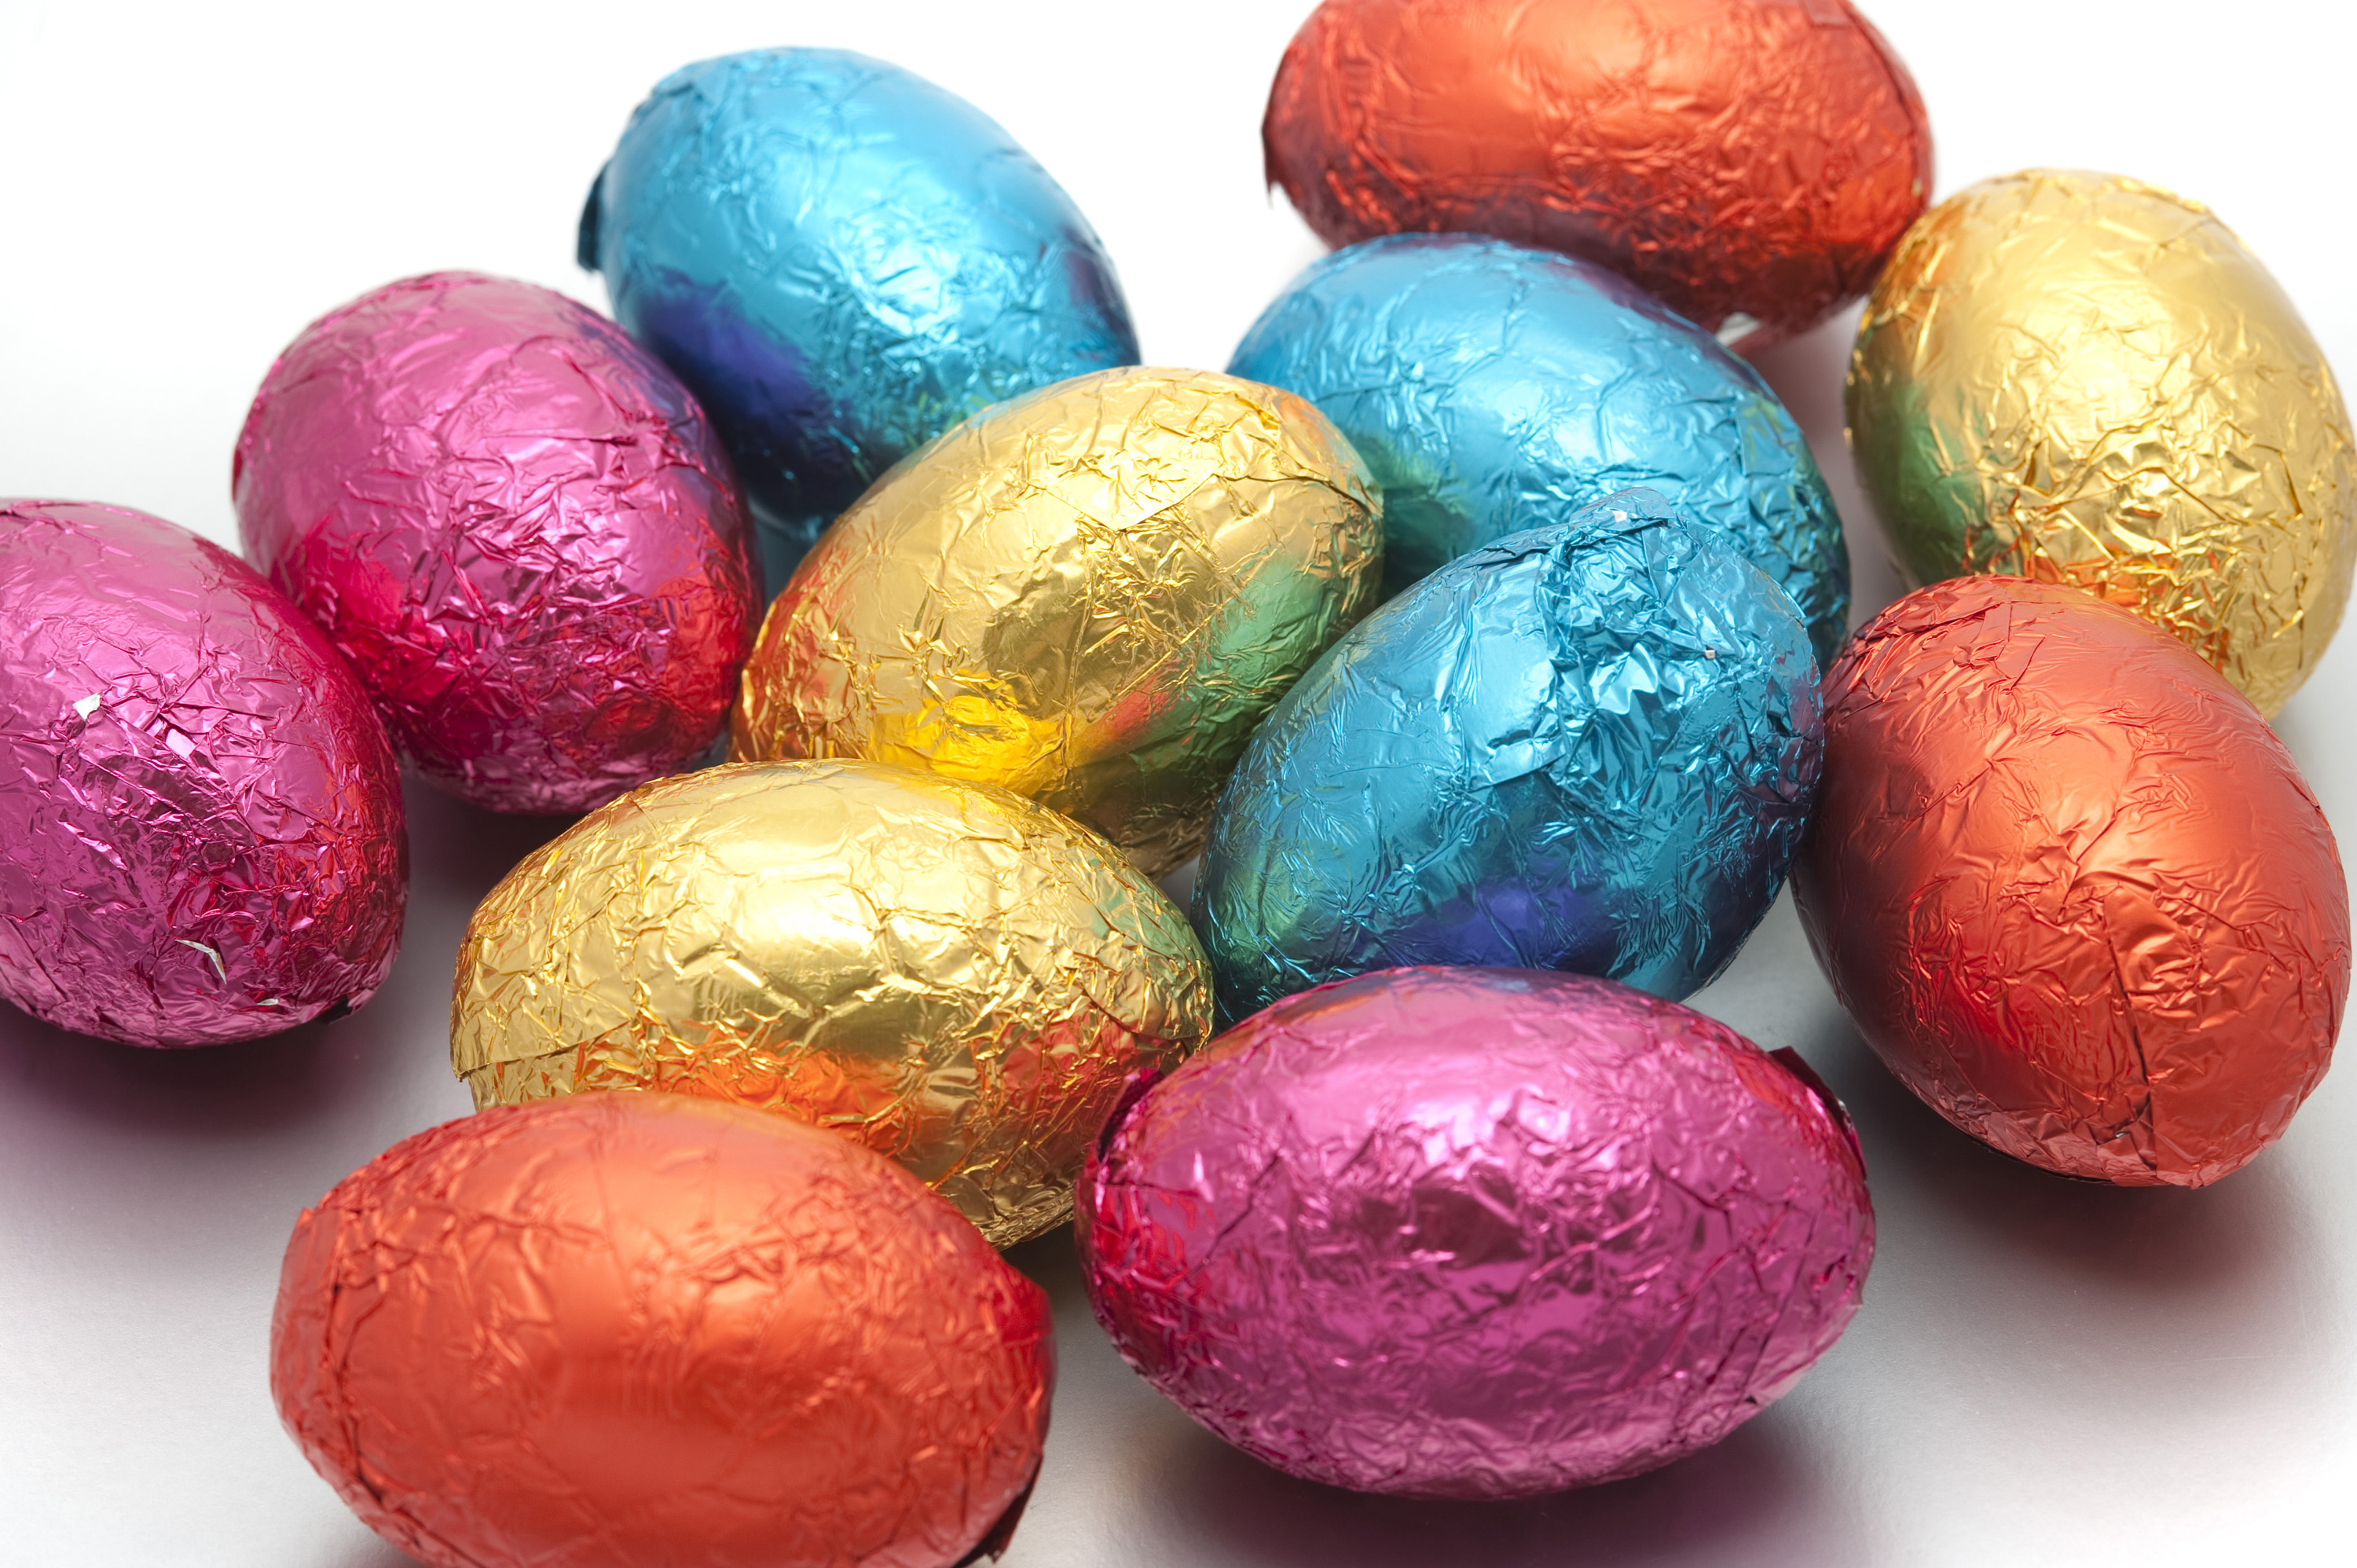 easter_egg_colors.jpg - Collection of multicoloured Easter Eggs wrapped in different coloured shiny foil wrappers spread out randomly